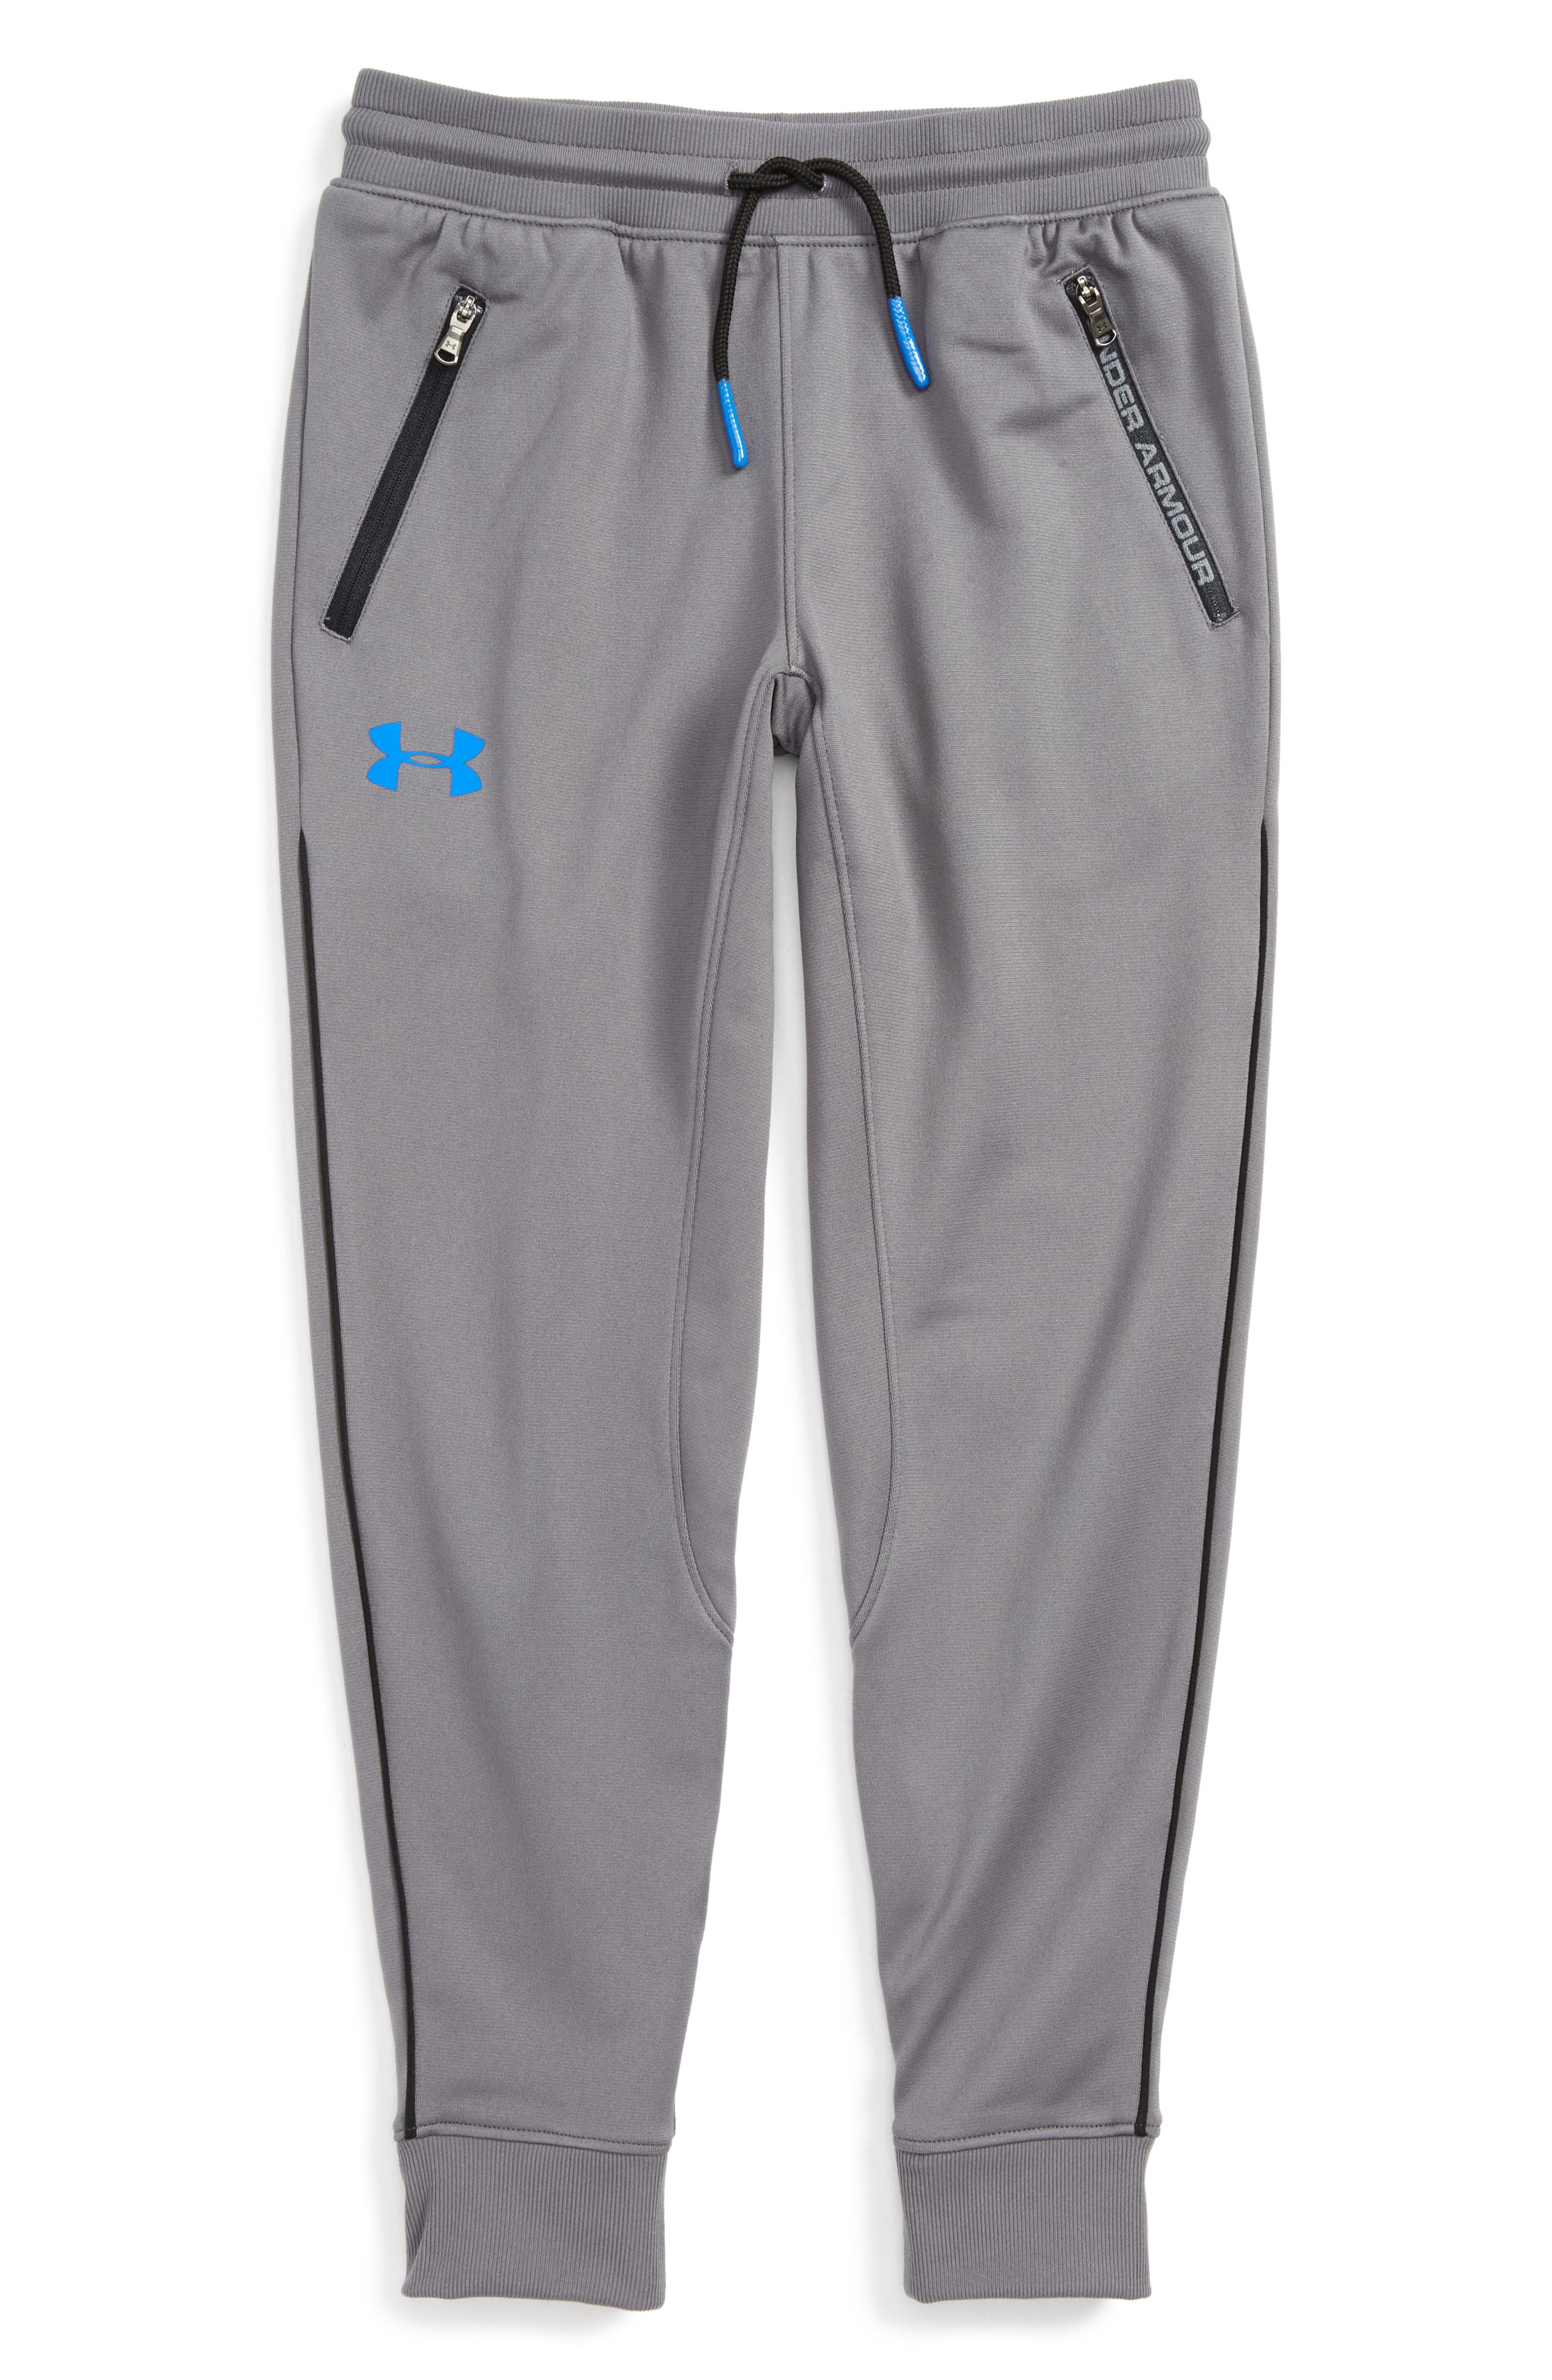 Main Image - Under Armour 'Pennant' Tapered Pants (Little Boys & Big Boys)